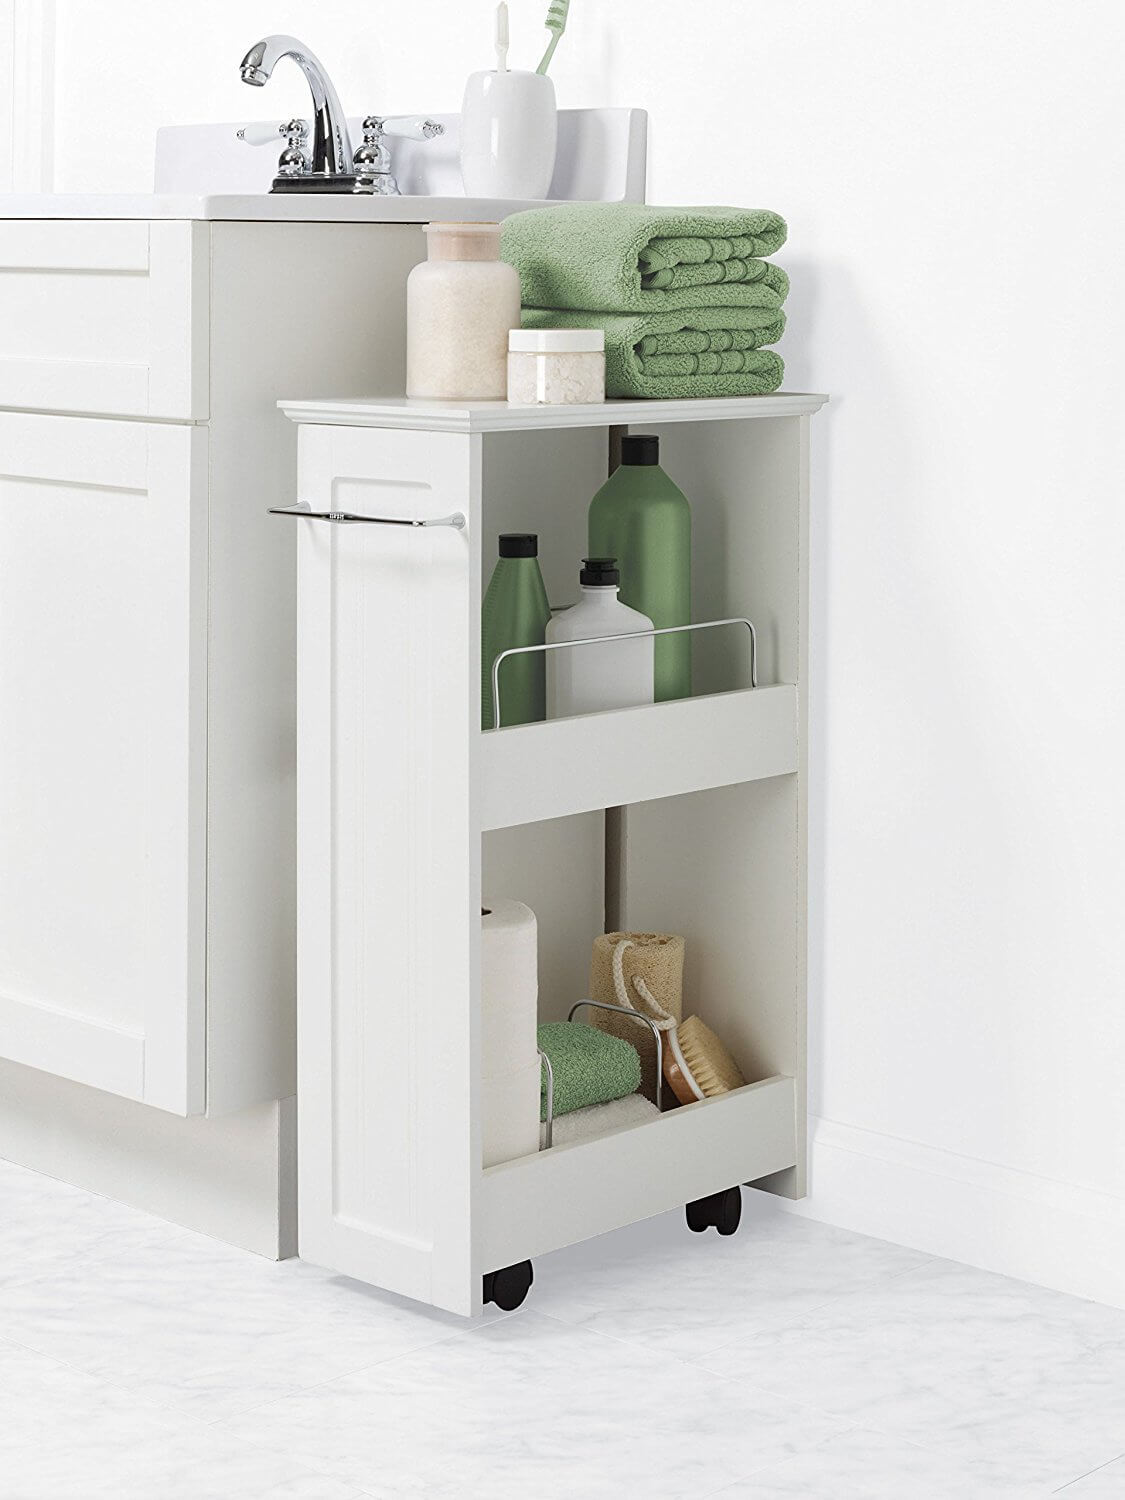 Zenna Home Slimline Rolling Storage Shelf : slimline bathroom storage  - Aquiesqueretaro.Com